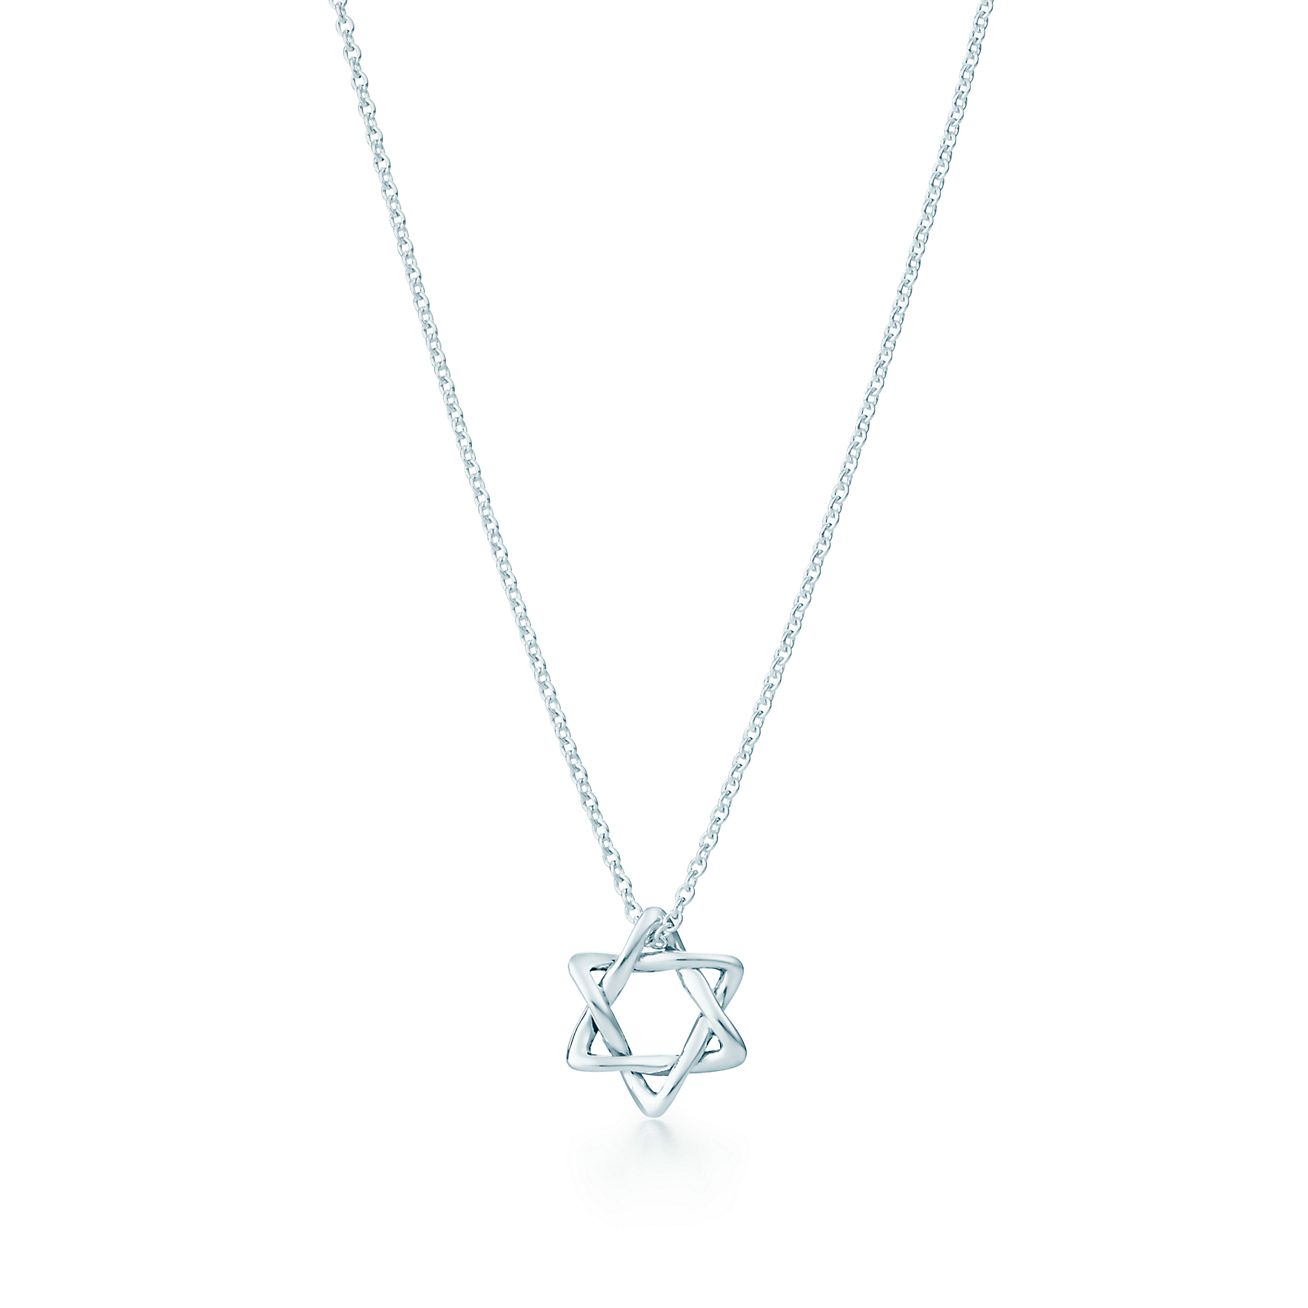 fullxfull hkxa hanukkah charm products il necklace magen david star silver chain gift of